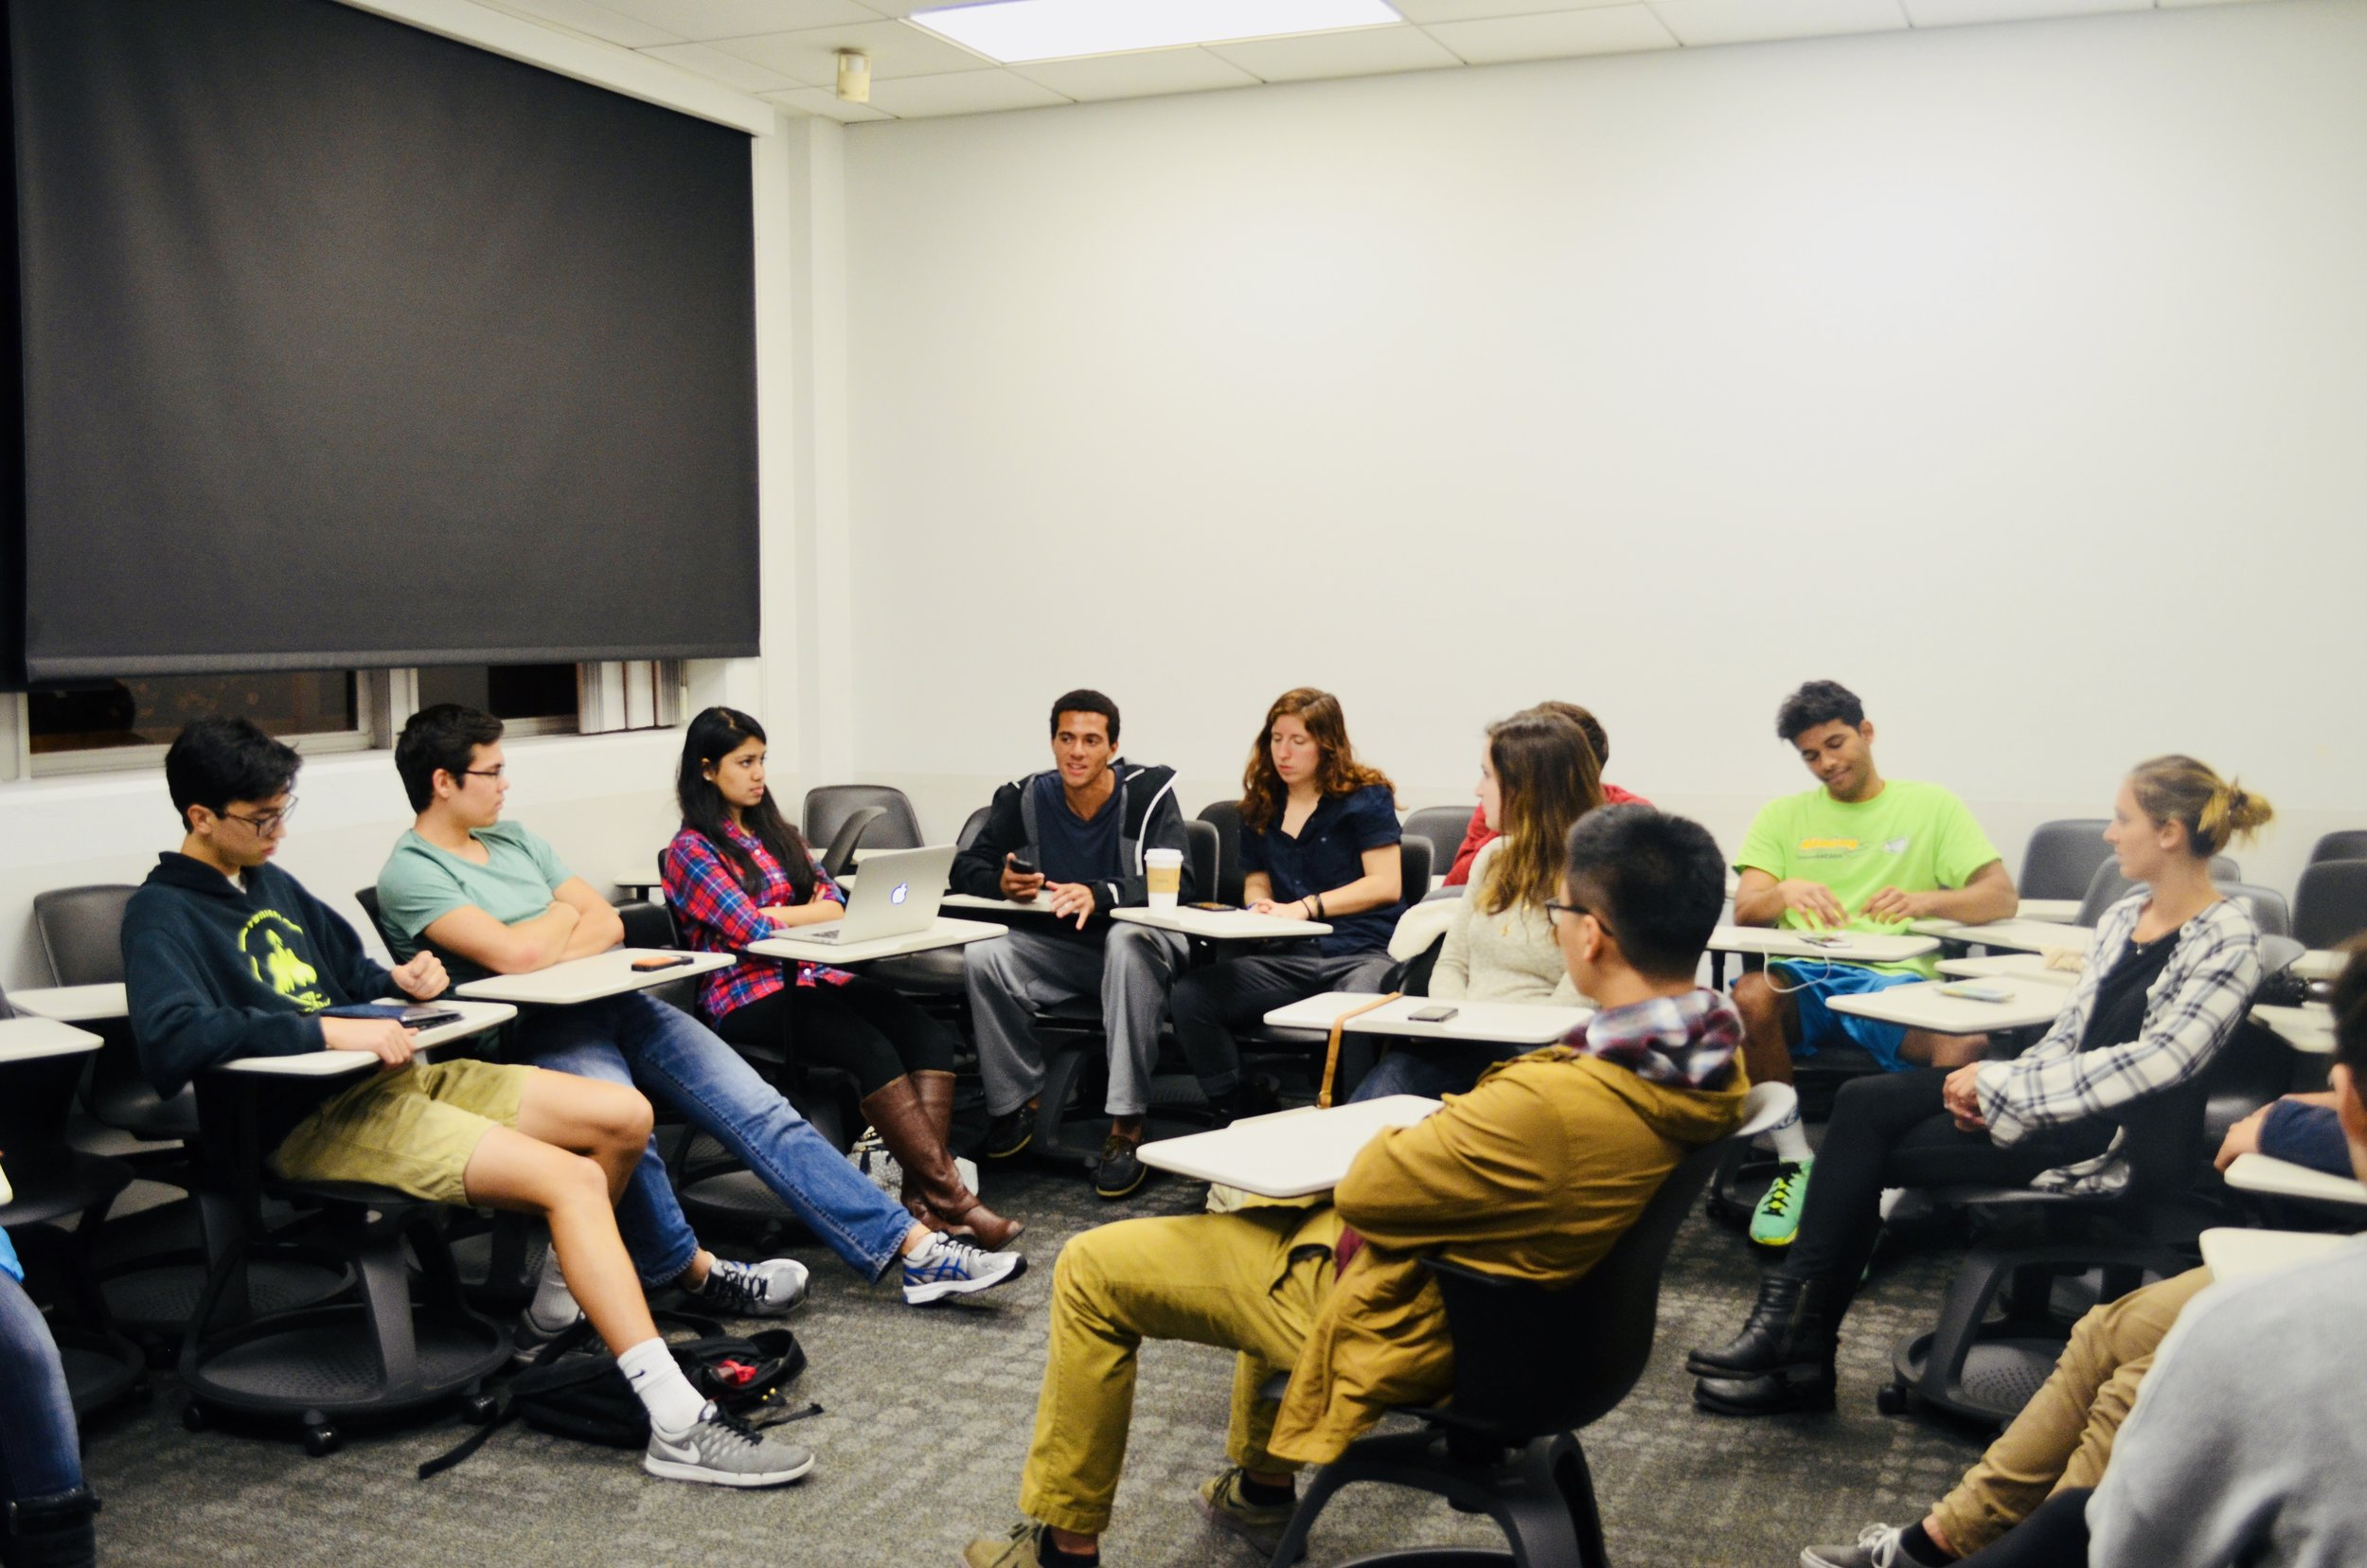 Discussing possible alternatives during a project meeting on campus.